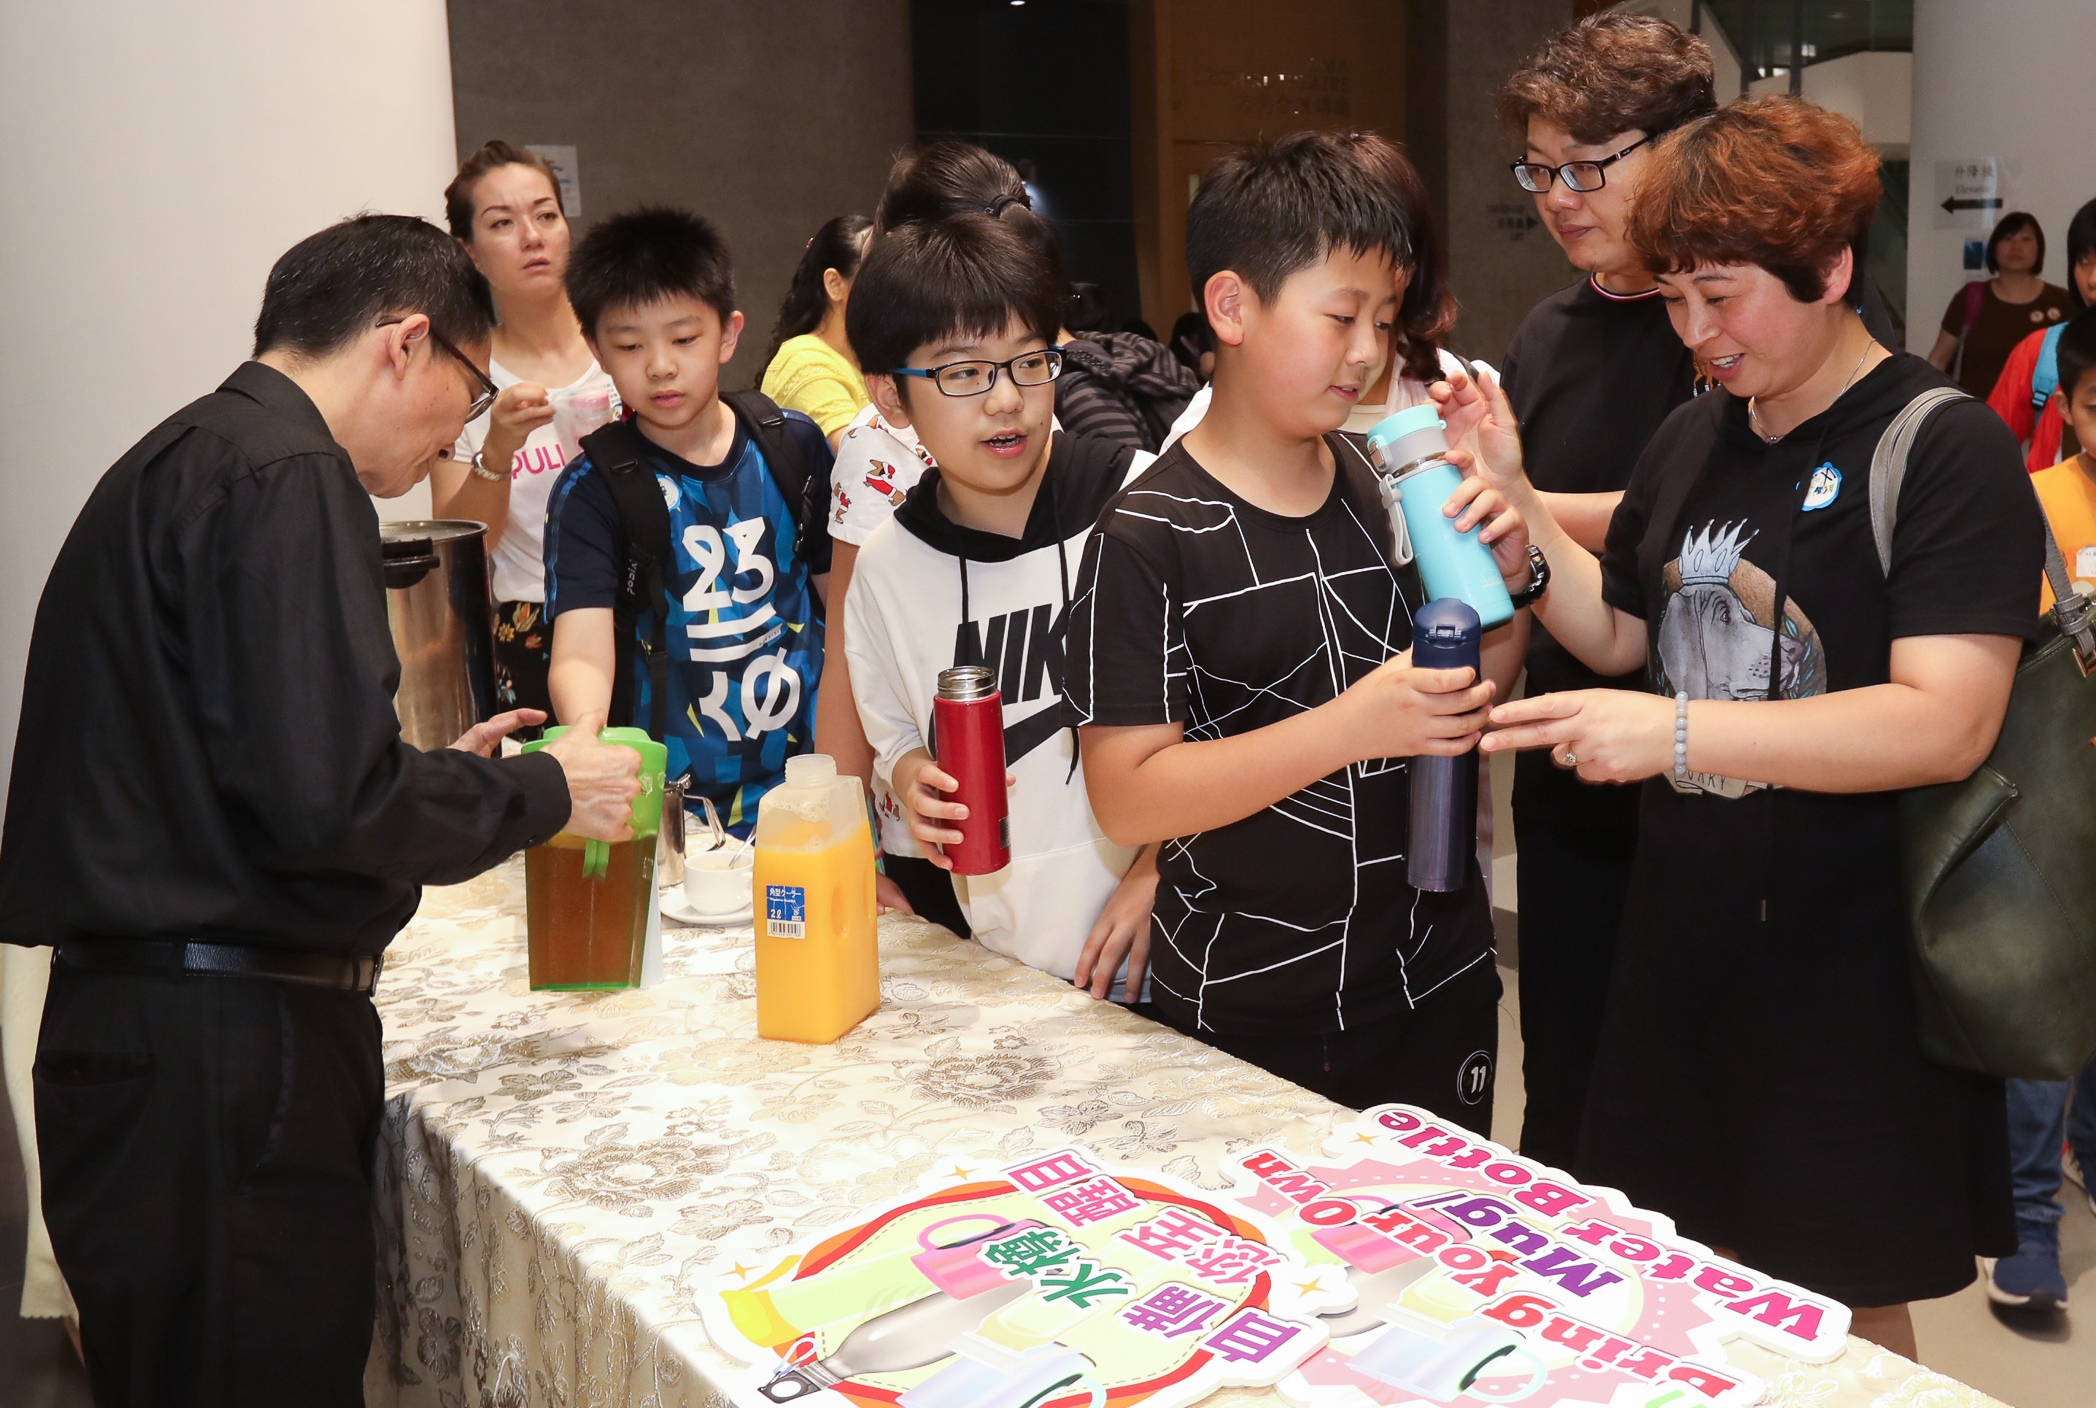 To promote the message of 'Bring Your Own' and the 'UNIfy: Skip the Straw' joint-university movement, free drinks were distributed to participants who brought their own cups/bottles.